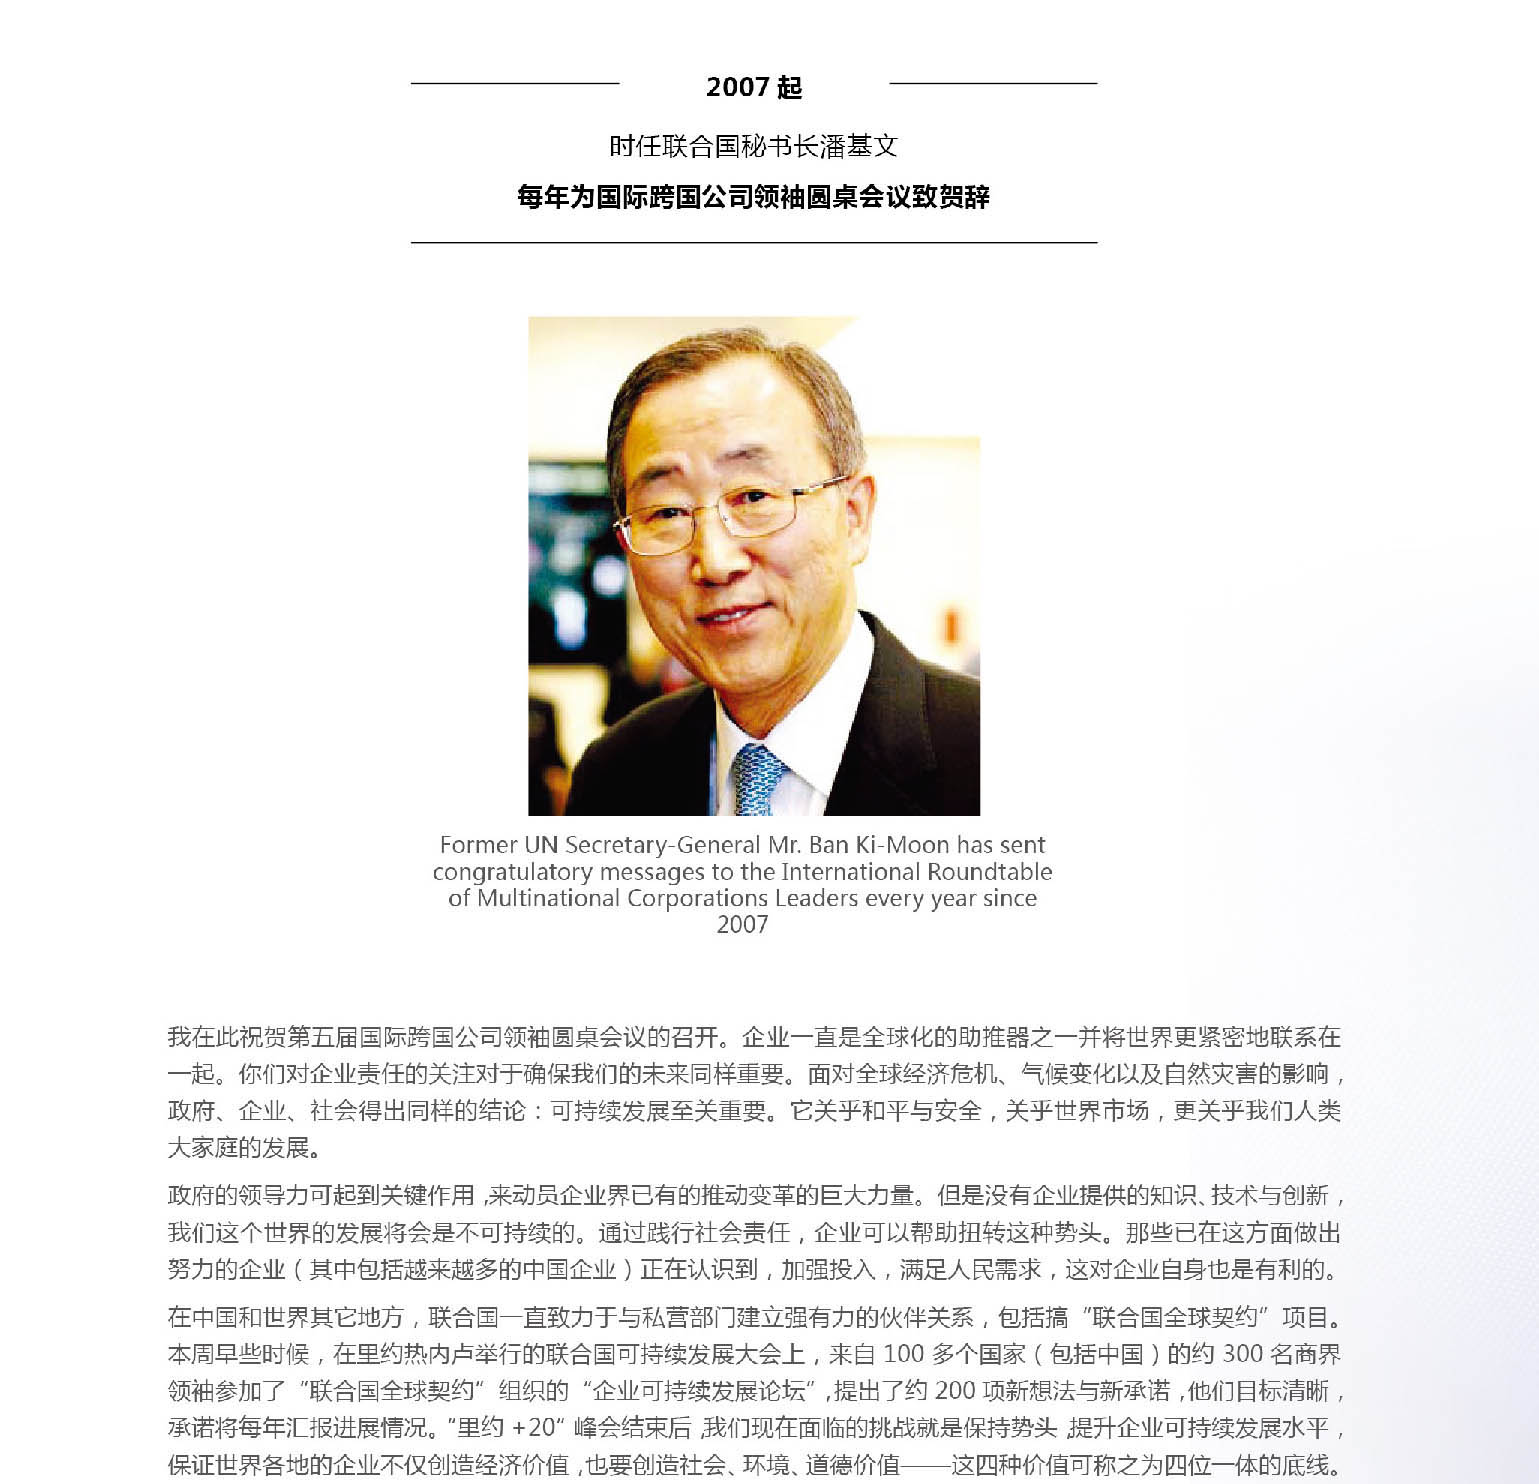 Former UN Secretary-General Mr. Ban Ki-Moon has sent congratulatory messages to the International Roundtable of Multinational Corporations Leaders every year since 2007